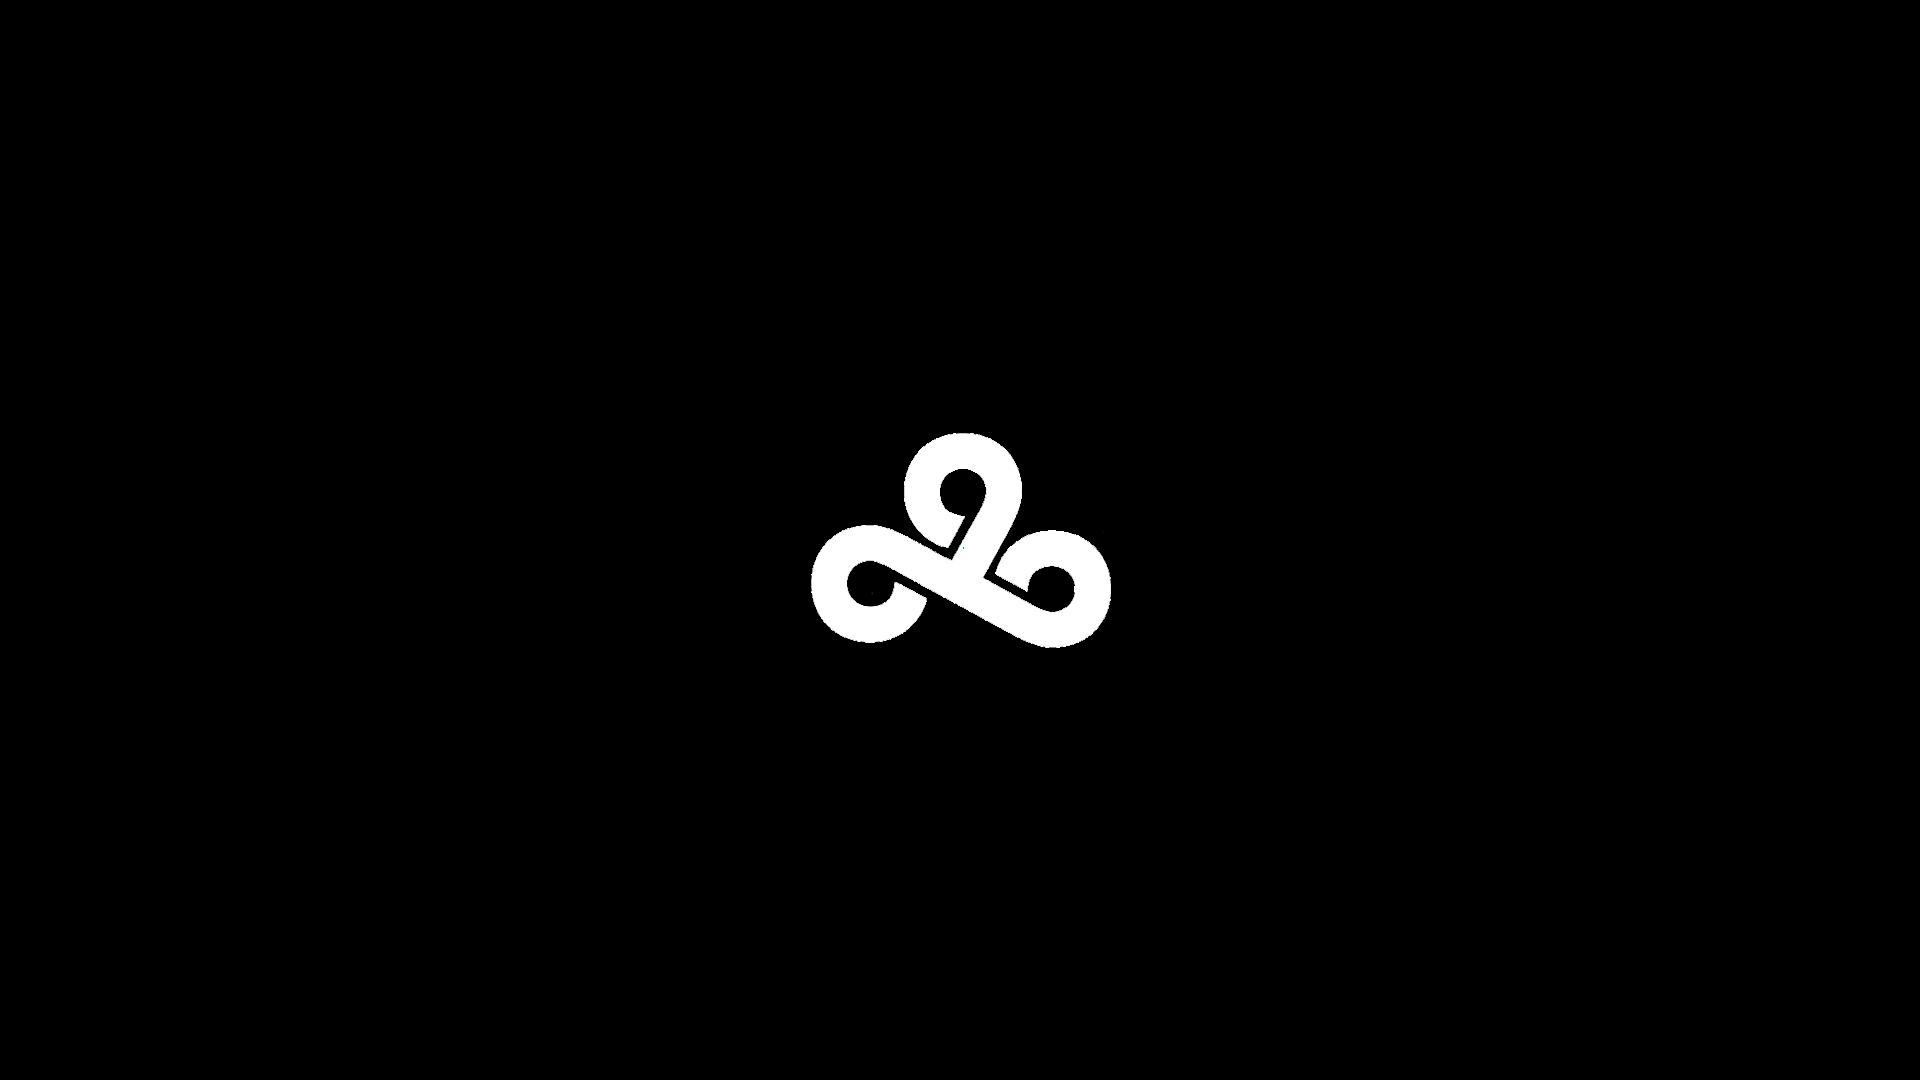 Cloud 9 BW  CSGO Wallpapers and Backgrounds